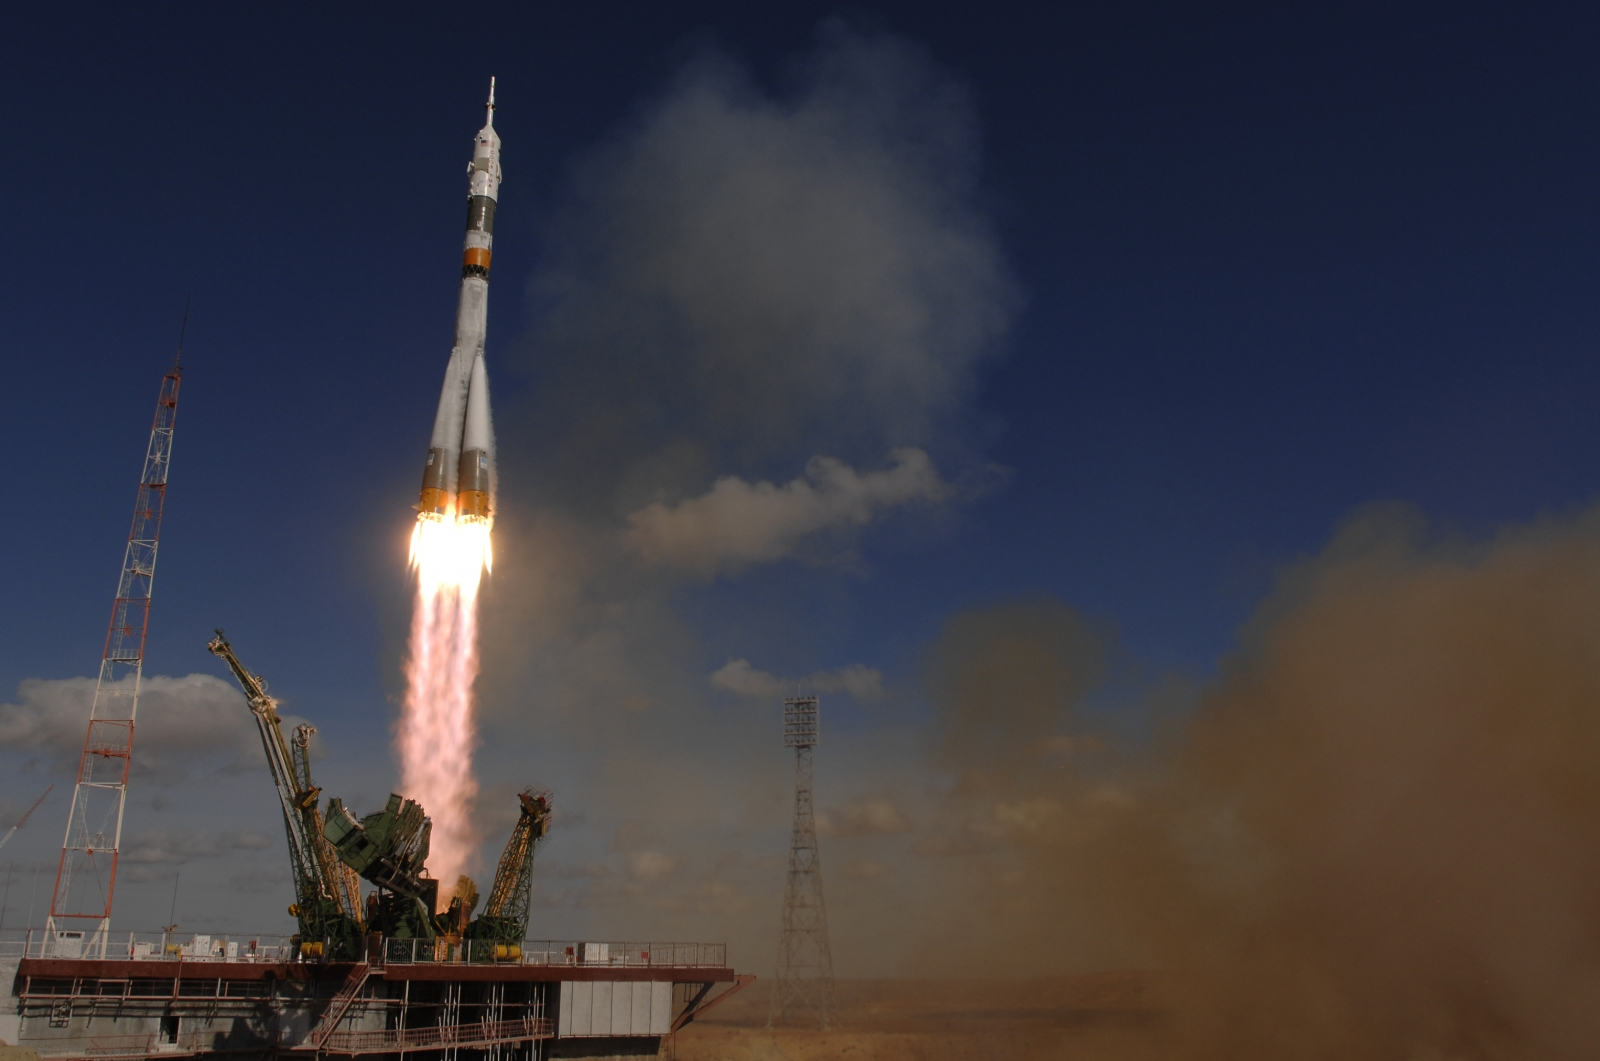 Soyuz TMA-13 spacecraft